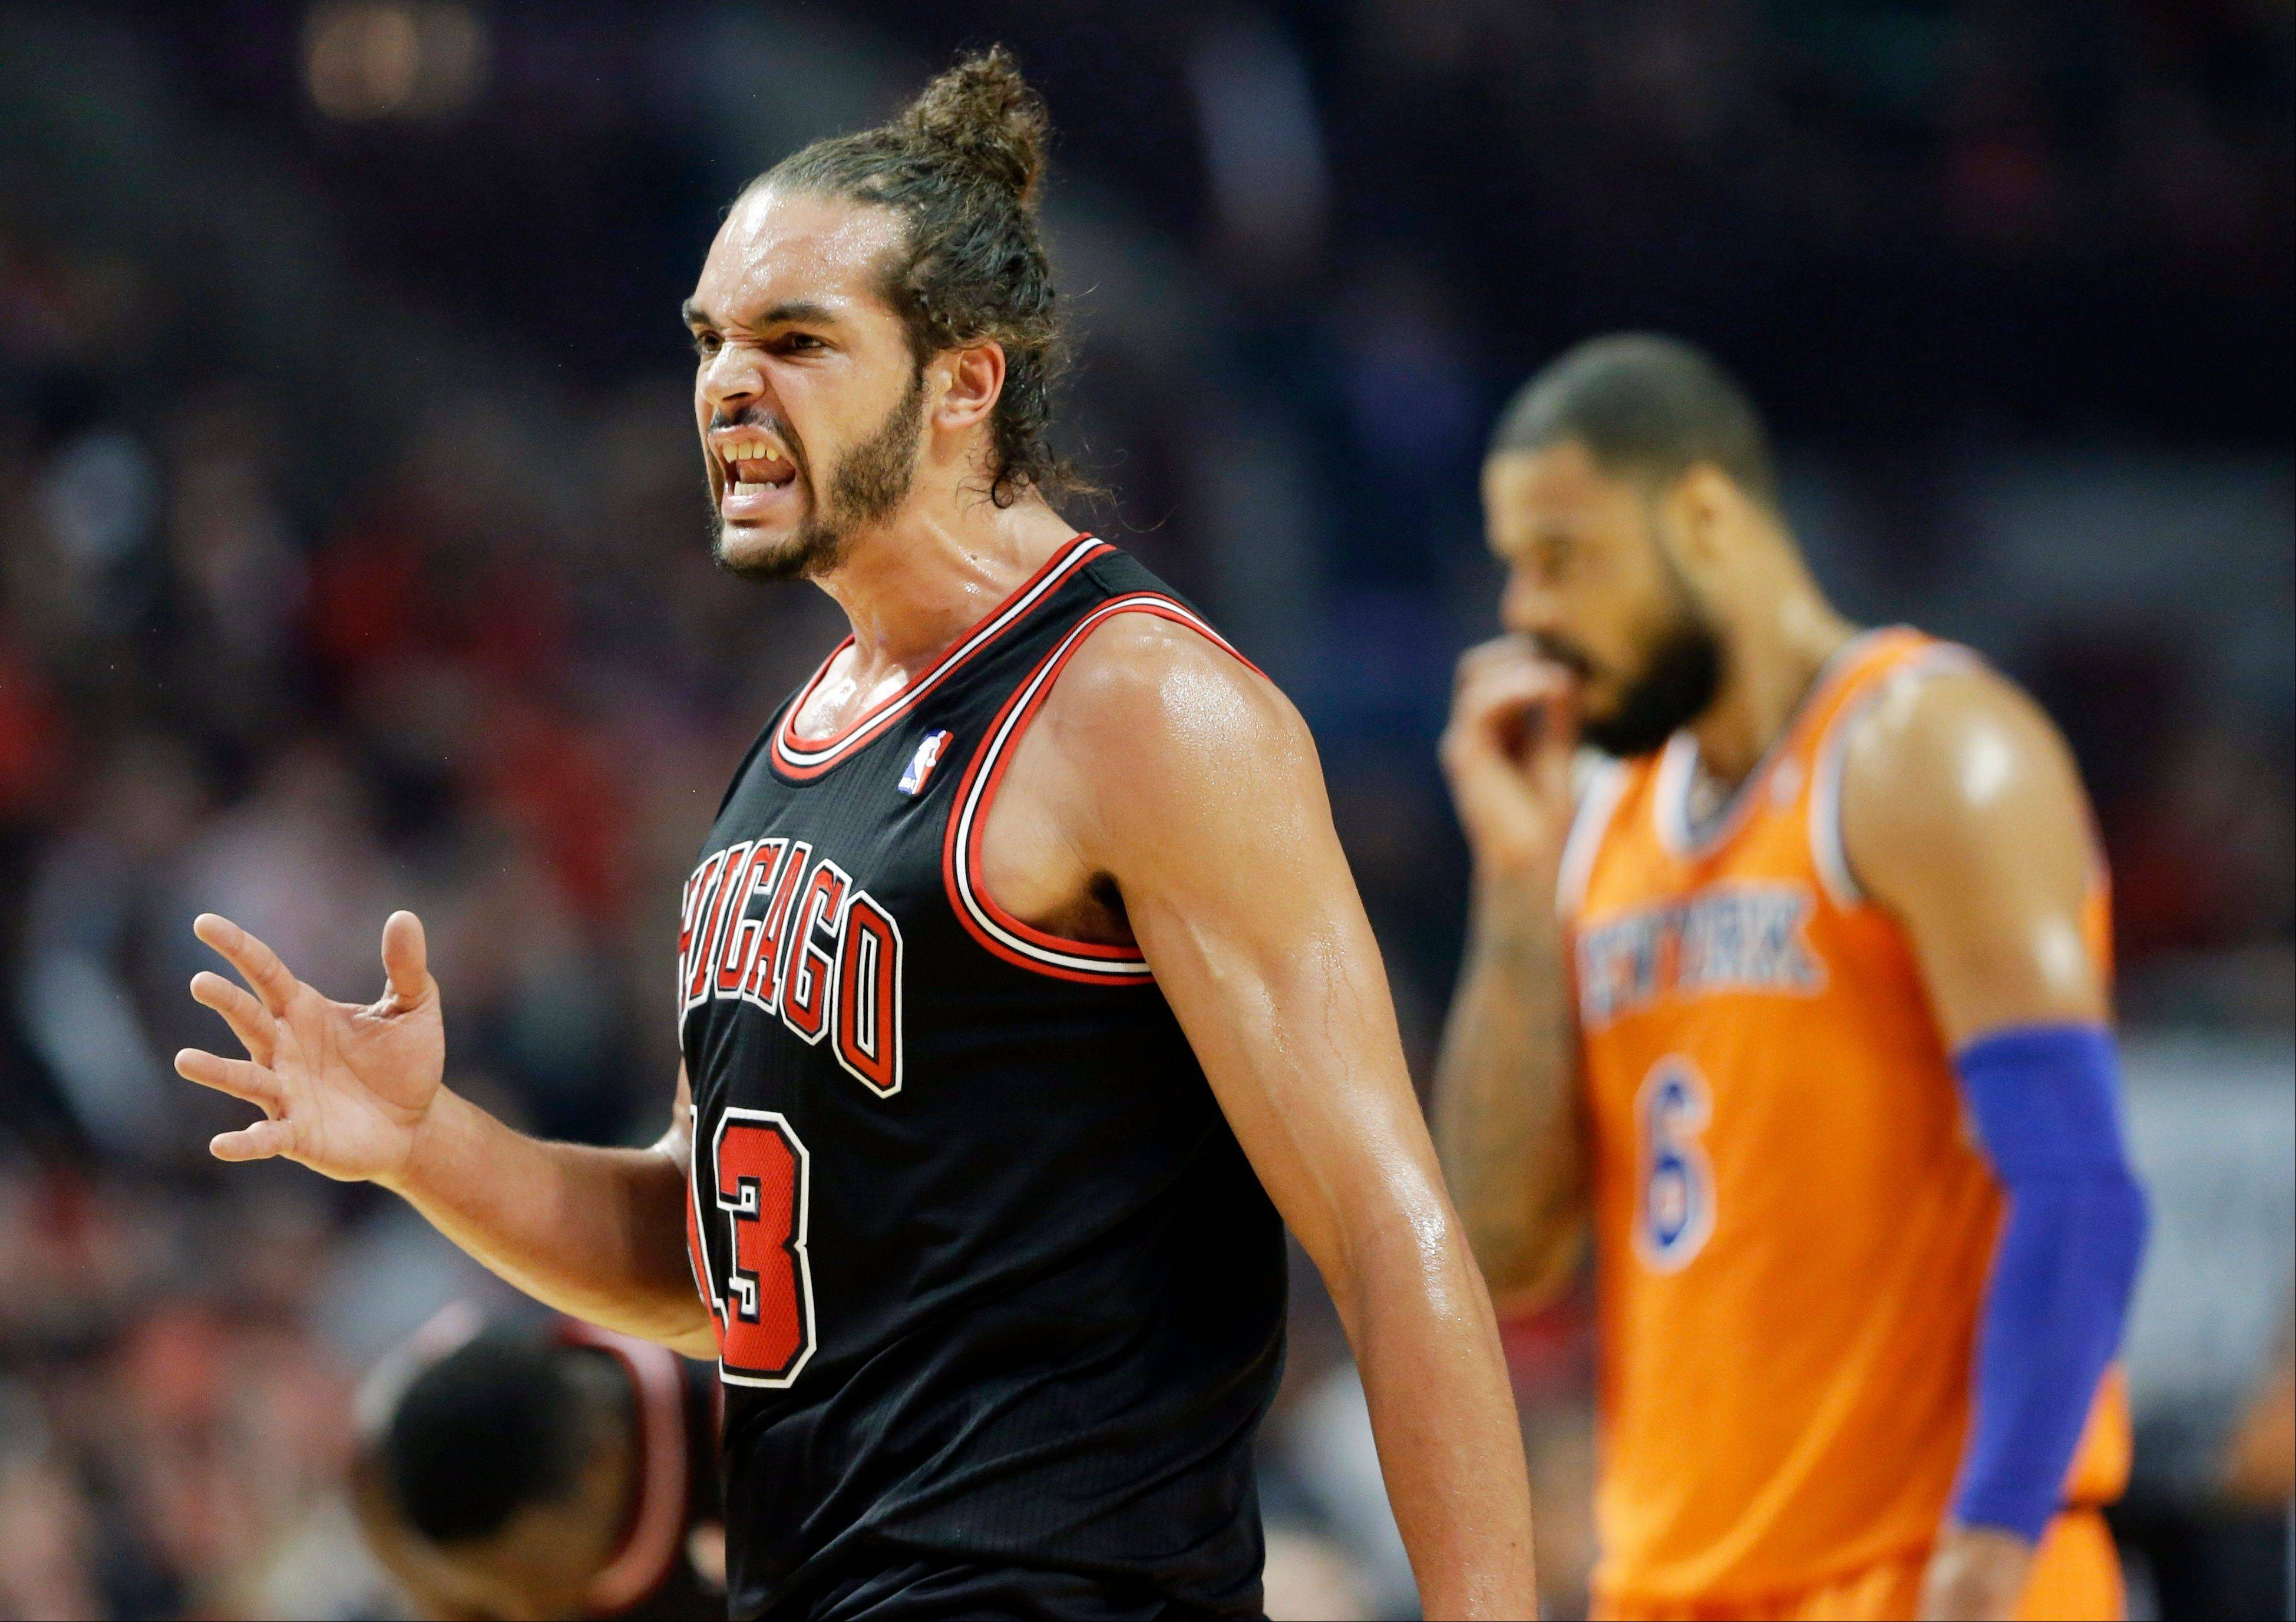 Joakim Noah, left, reacts after Derrick Rose scored during the first half of Thursday's game against the Knicks in Chicago.